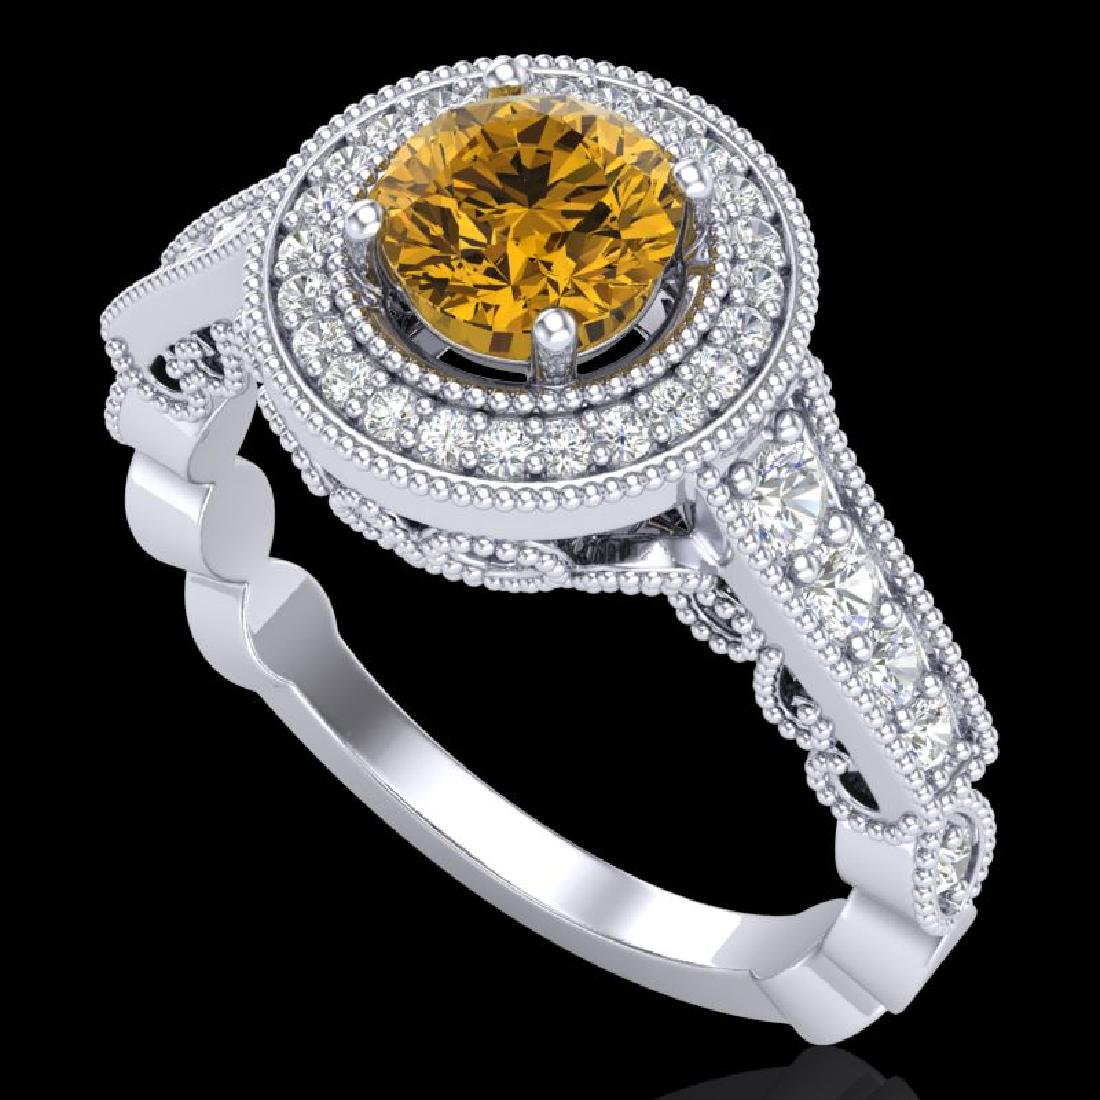 1.12 CTW Intense Fancy Yellow Diamond Engagement Art